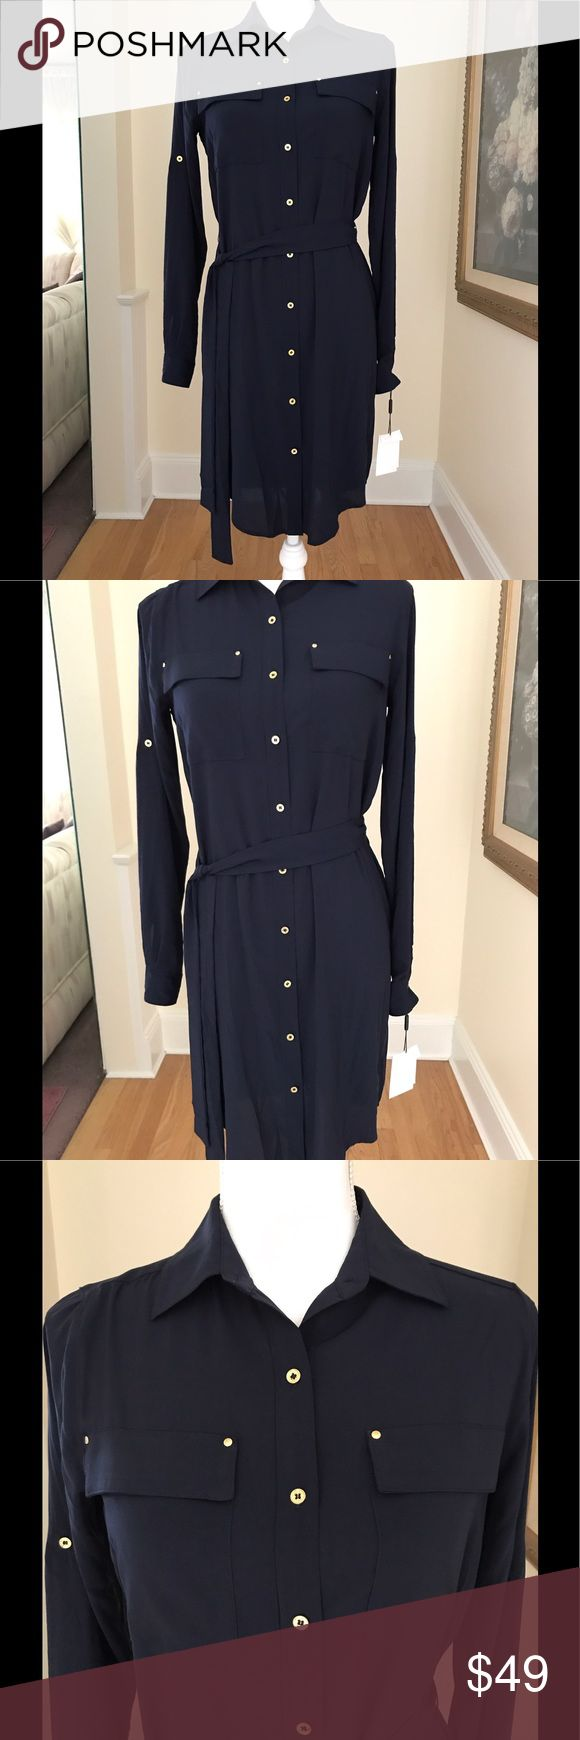 "Calvin Klein NWT Navy Blue Belted Shirt Dress Sz 2 Calvin Klein New With Tags Belted Shirt Dress In Twilight( Navy Blue). Size 2. The Dress Features Gold Buttons And Two Front Pockets. The Sleeves Are Adjustable Allowing A Long Length Or A Half Sleeve. An Extra Button Is Included. 35"" Shoulder To Hem. 15"" Shoulder To Shoulder. 17"" Underarm To Underarm. 25"" Shoulder To Cuff. All Measurements Are Approximate. 97% Polyester, 3% Spandex. Calvin Klein Dresses Midi"